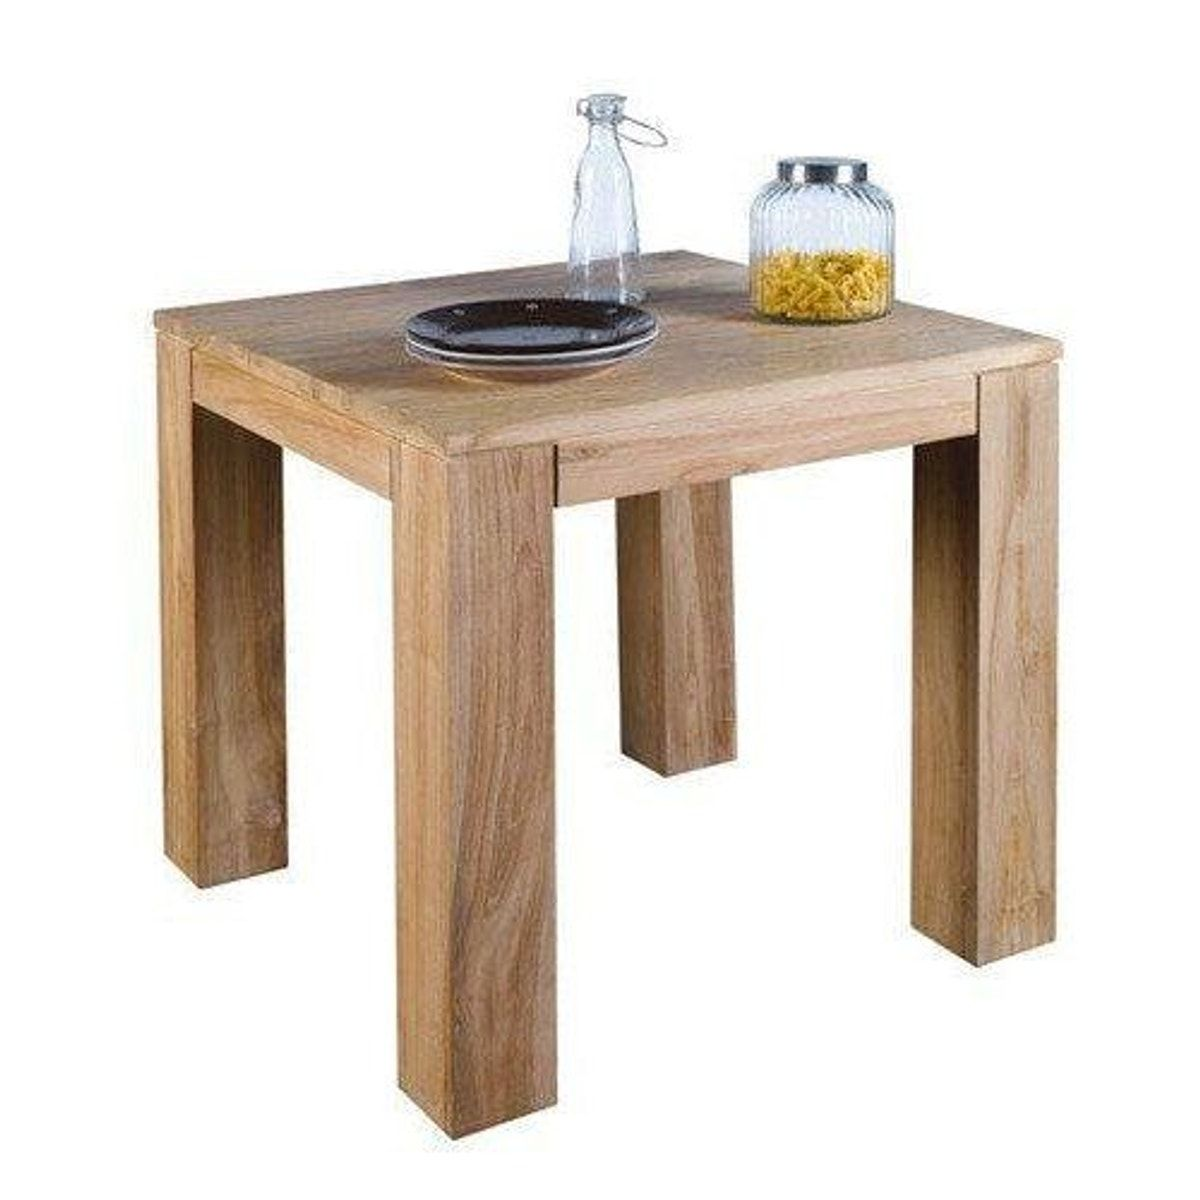 Table Carree En Teck 80cm Rio Taille 6 Pers Table Salle A Manger Tables A Manger Carrees